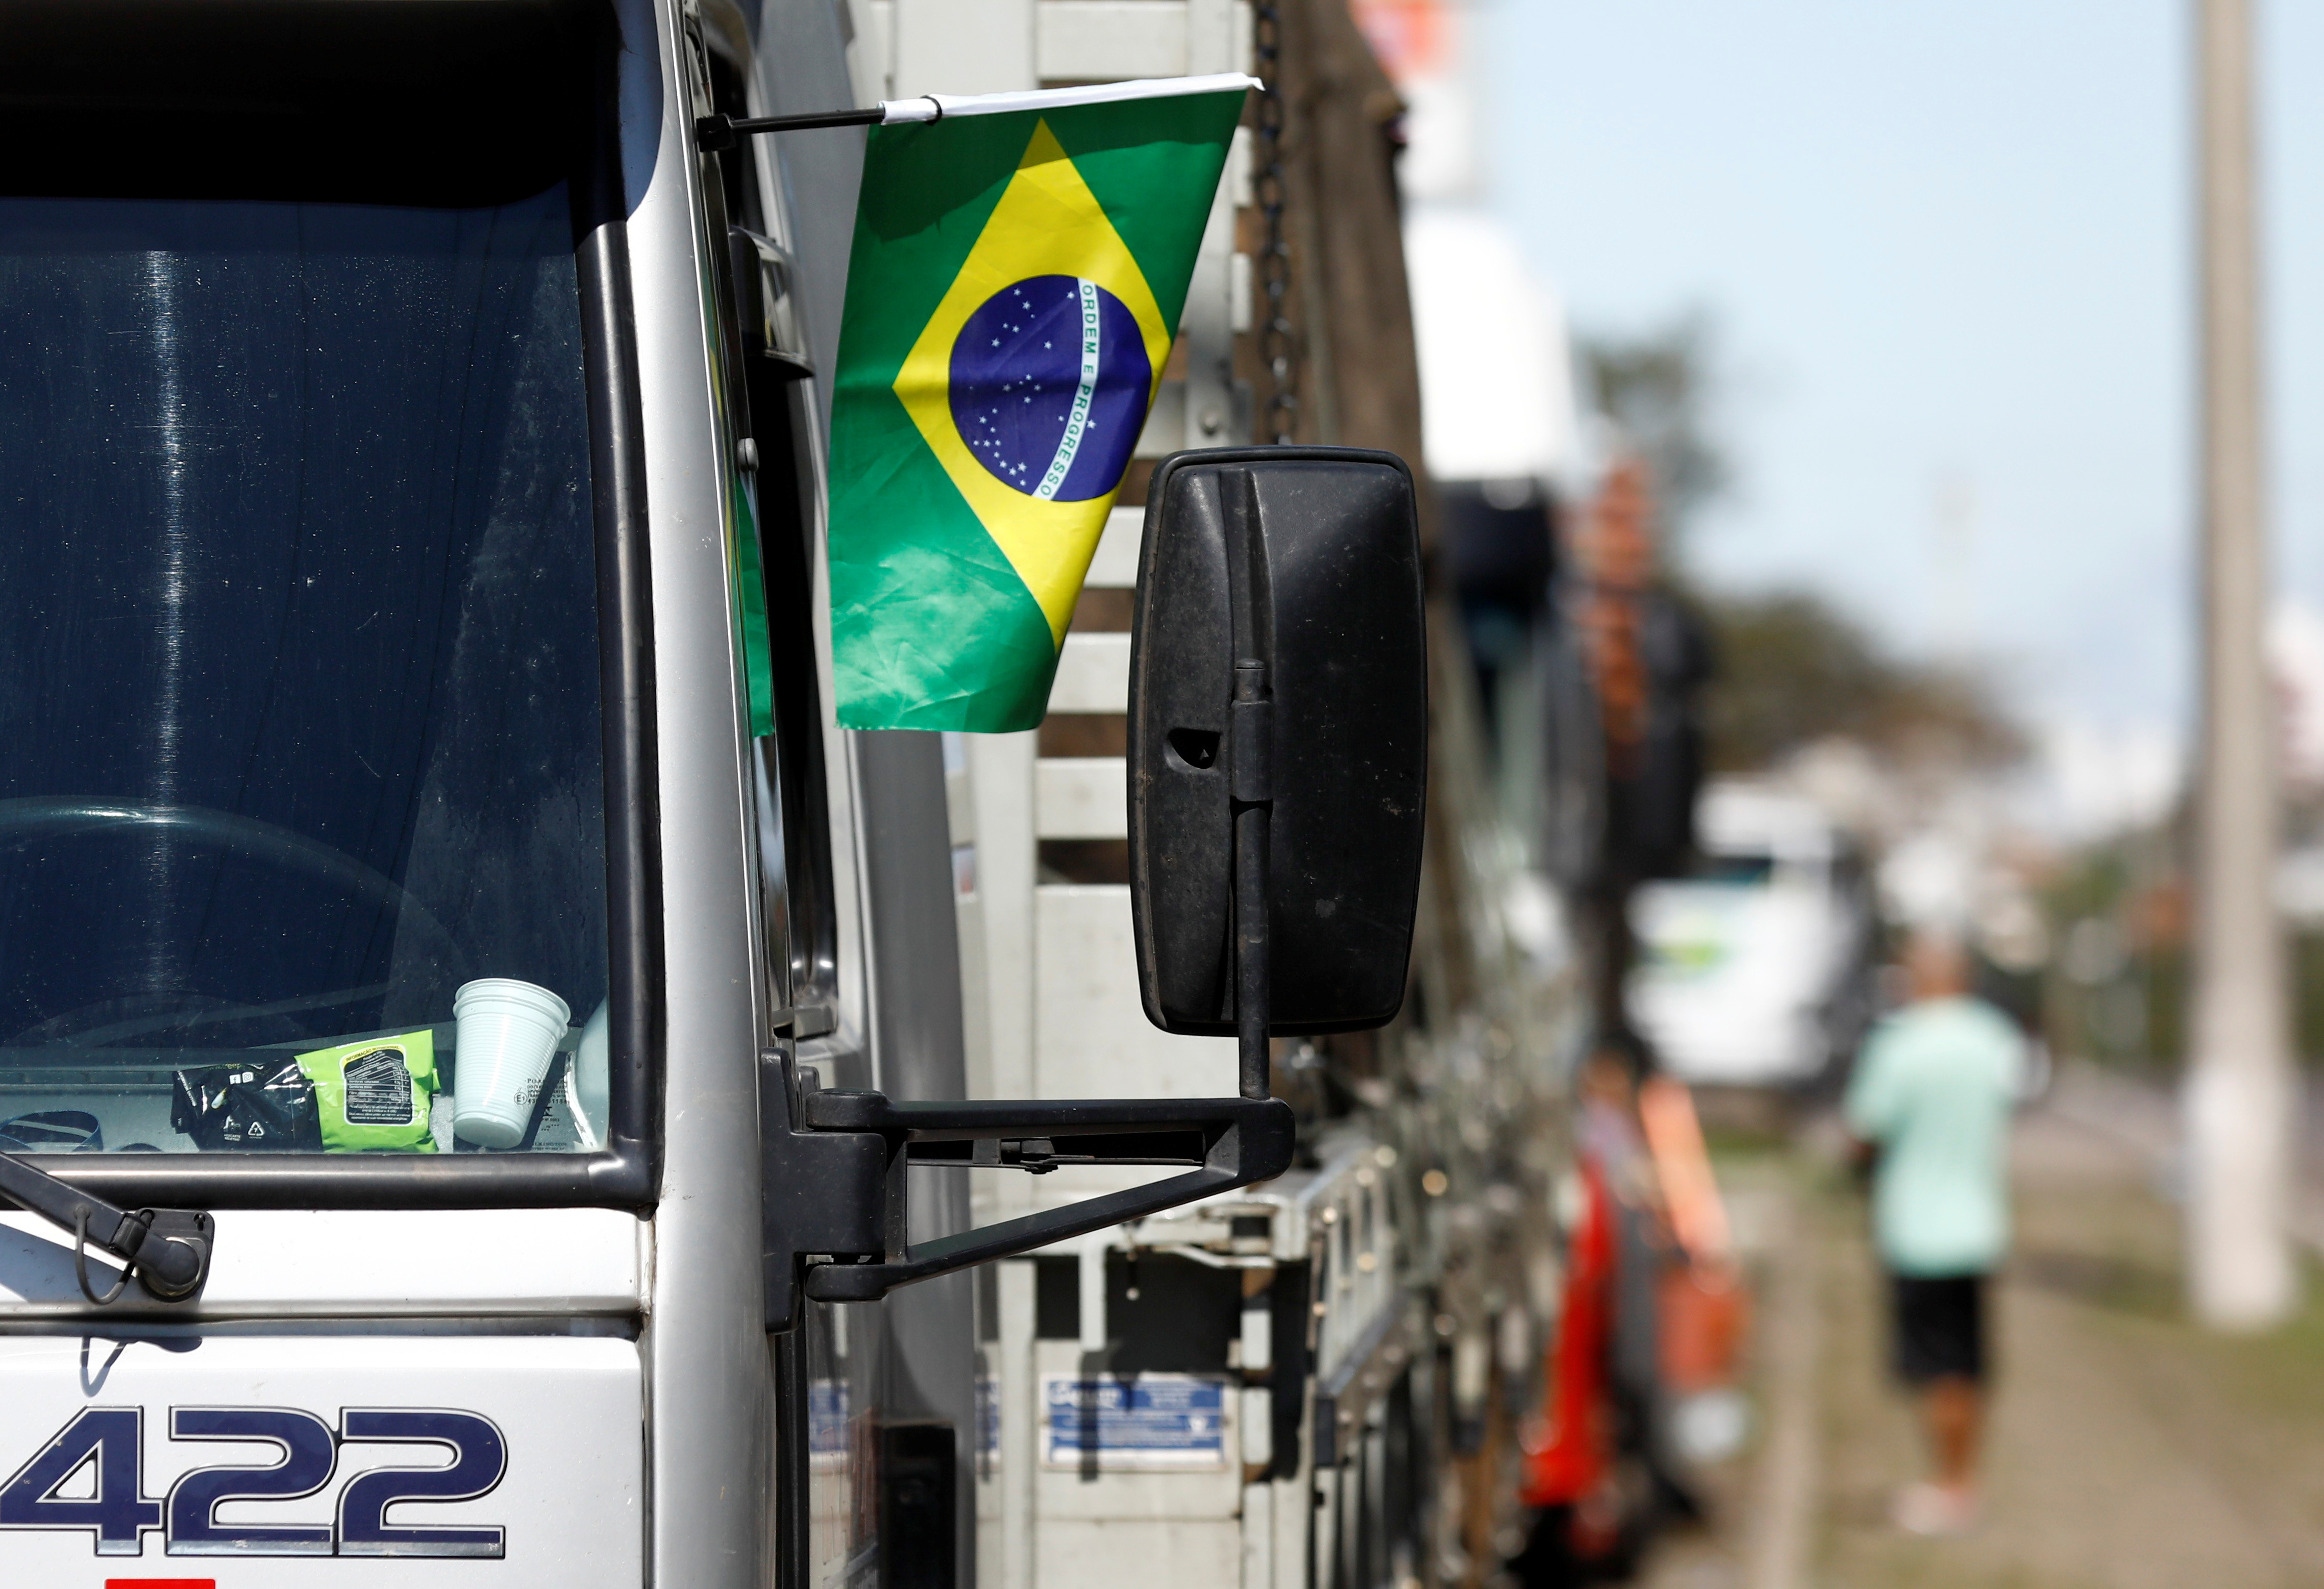 Truckers attend a protest on the BR-101 highway in support of Brazil's President Jair Bolsonaro in Osorio, Rio Grande do Sul state, Brazil, September 9, 2021. REUTERS/Diego Vara